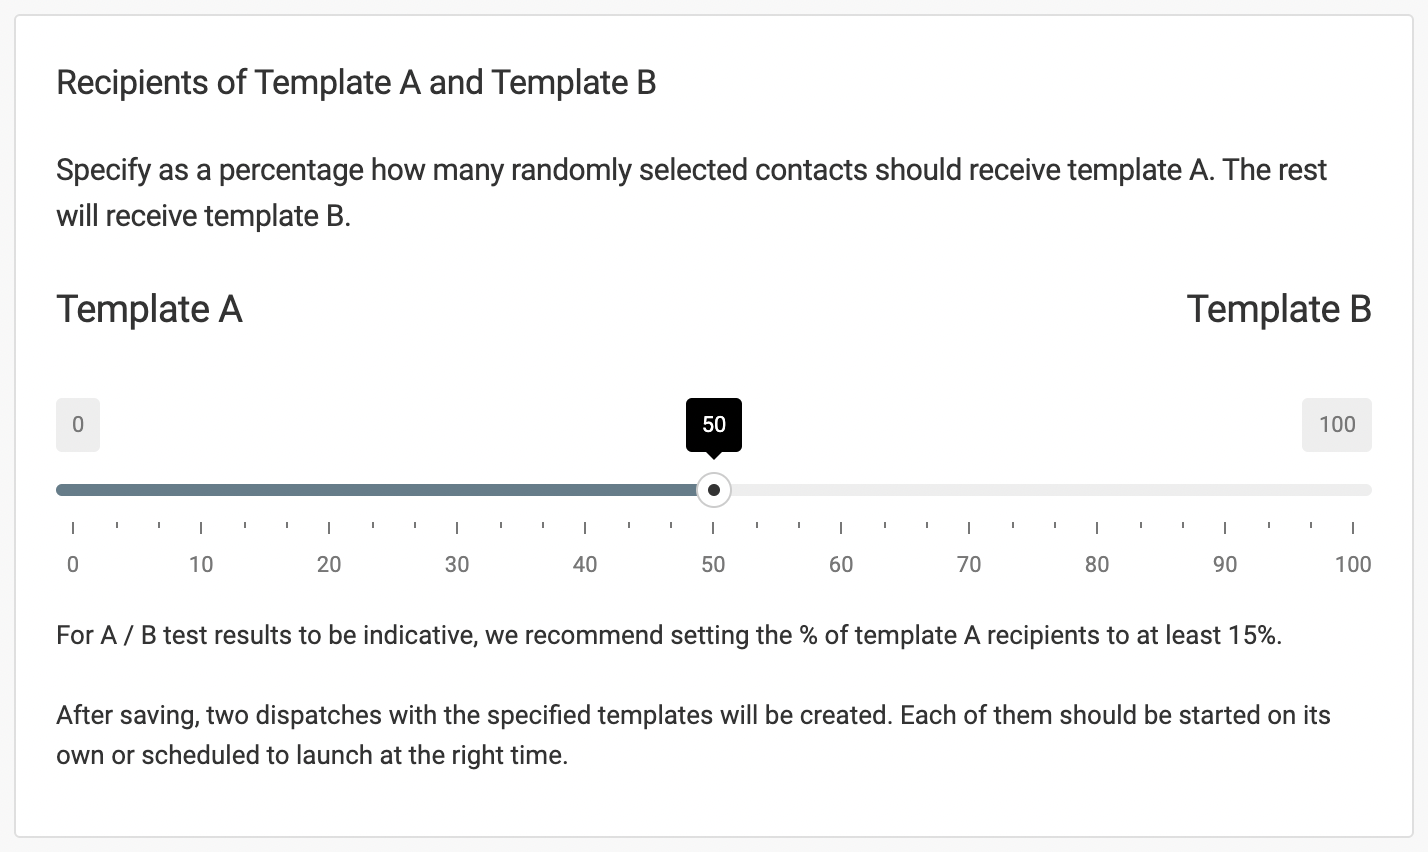 Specify the proportions of recipients of templates A and B